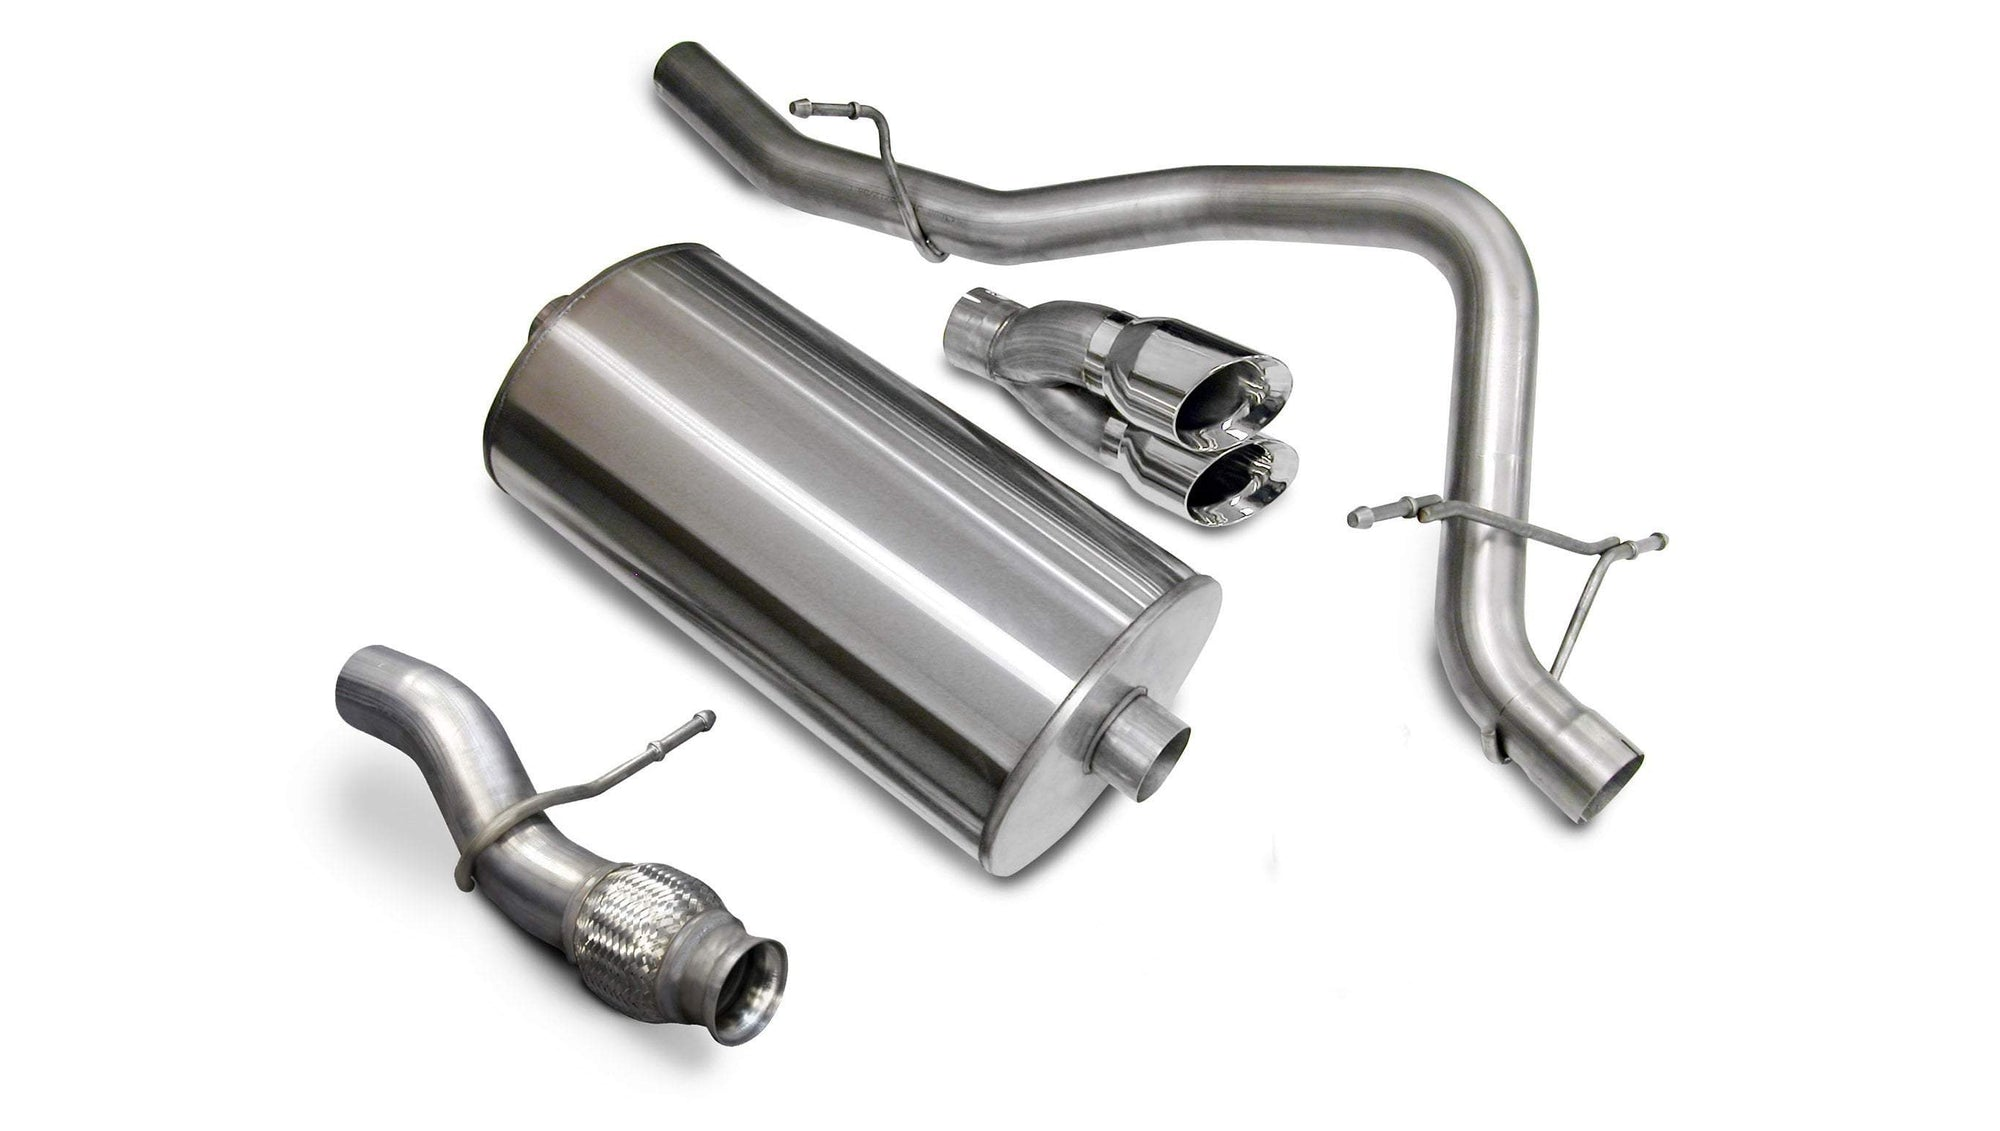 "CORSA PERFORMANCE Cat-Back Exhaust Polished / Sport / Single Rear - Twin 4.0in 2009-2014 Chevrolet Tahoe, GMC Yukon 5.3L V8, 3.0"" Single Rear Exit Catback Exhaust with Twin 4.0"" Tips (14912) Sport Sound Level"